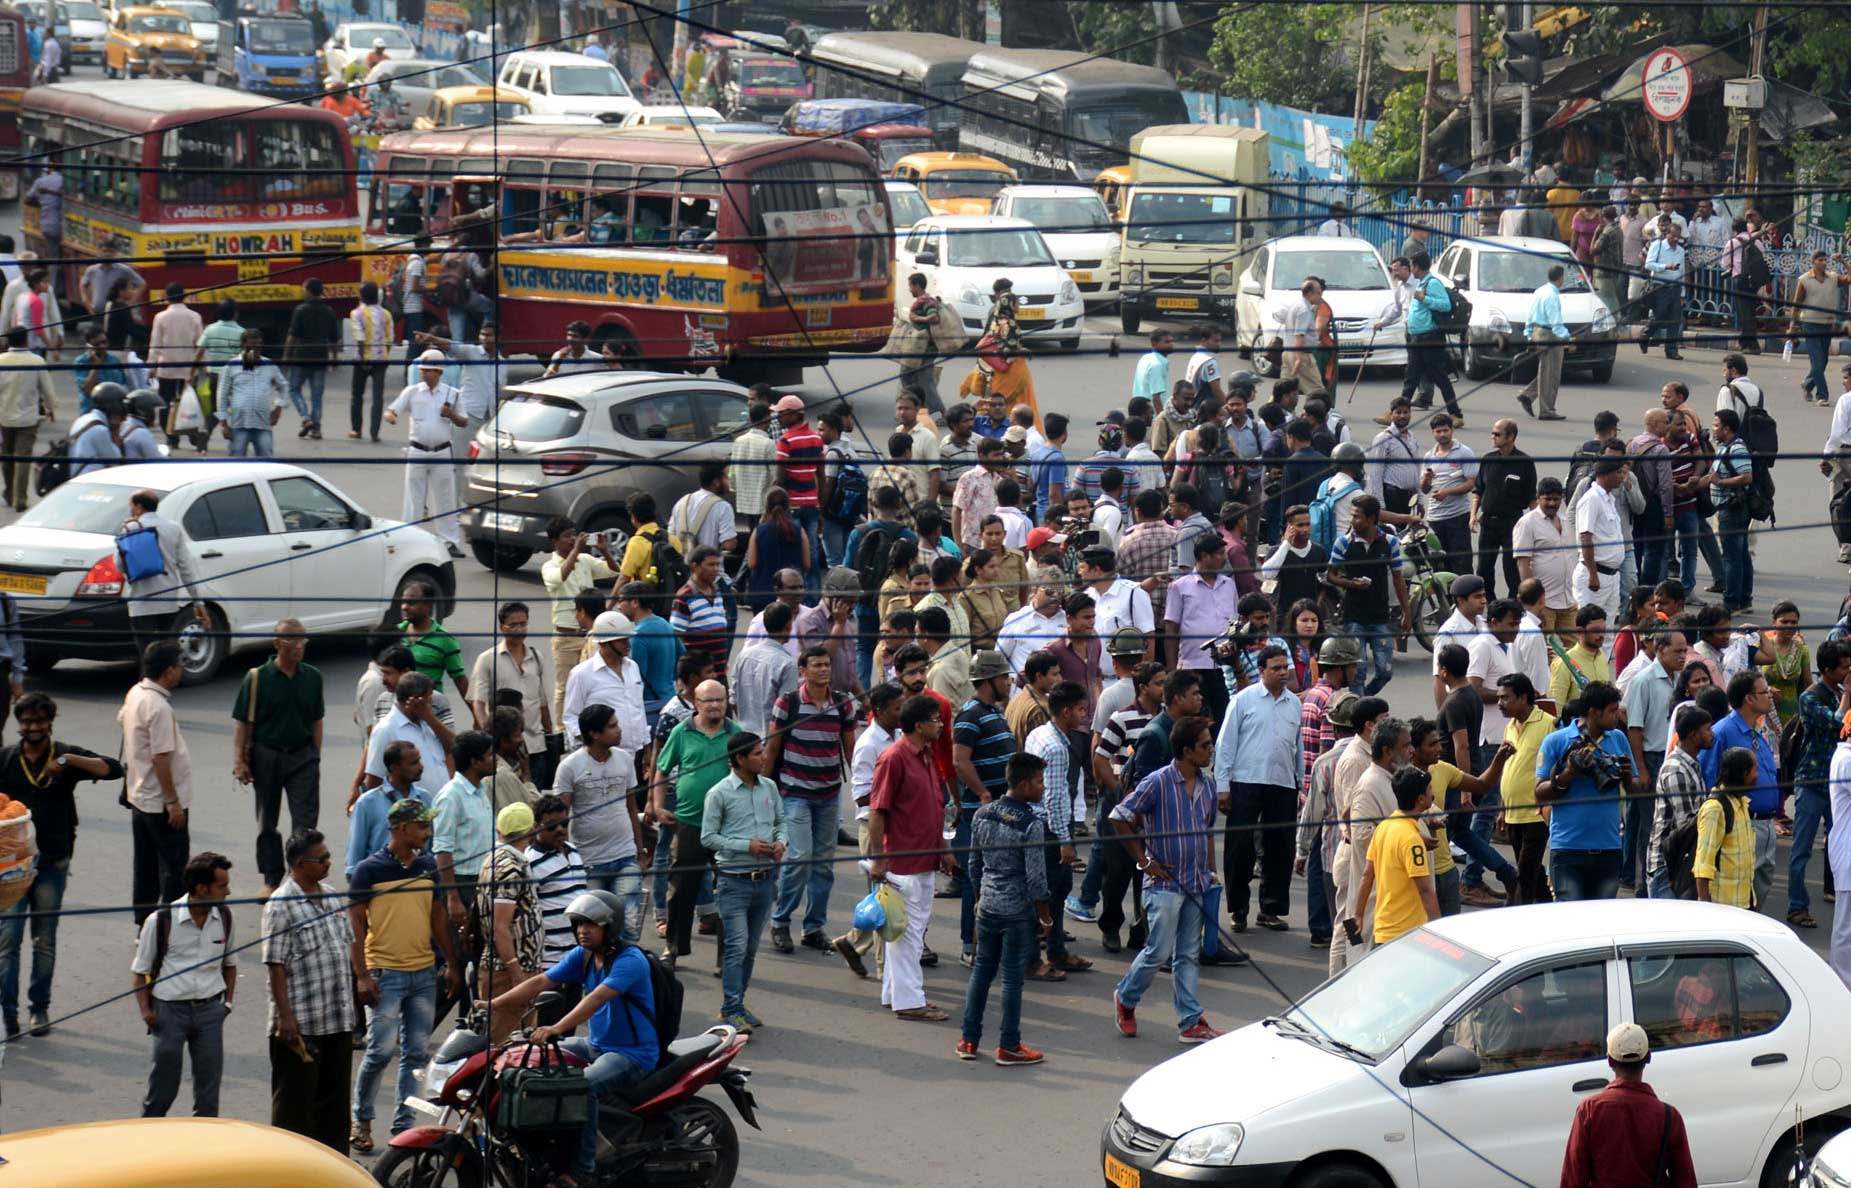 Traffic congestion at the S.N. Banerjee Road crossing, one of Calcutta's busiest intersections